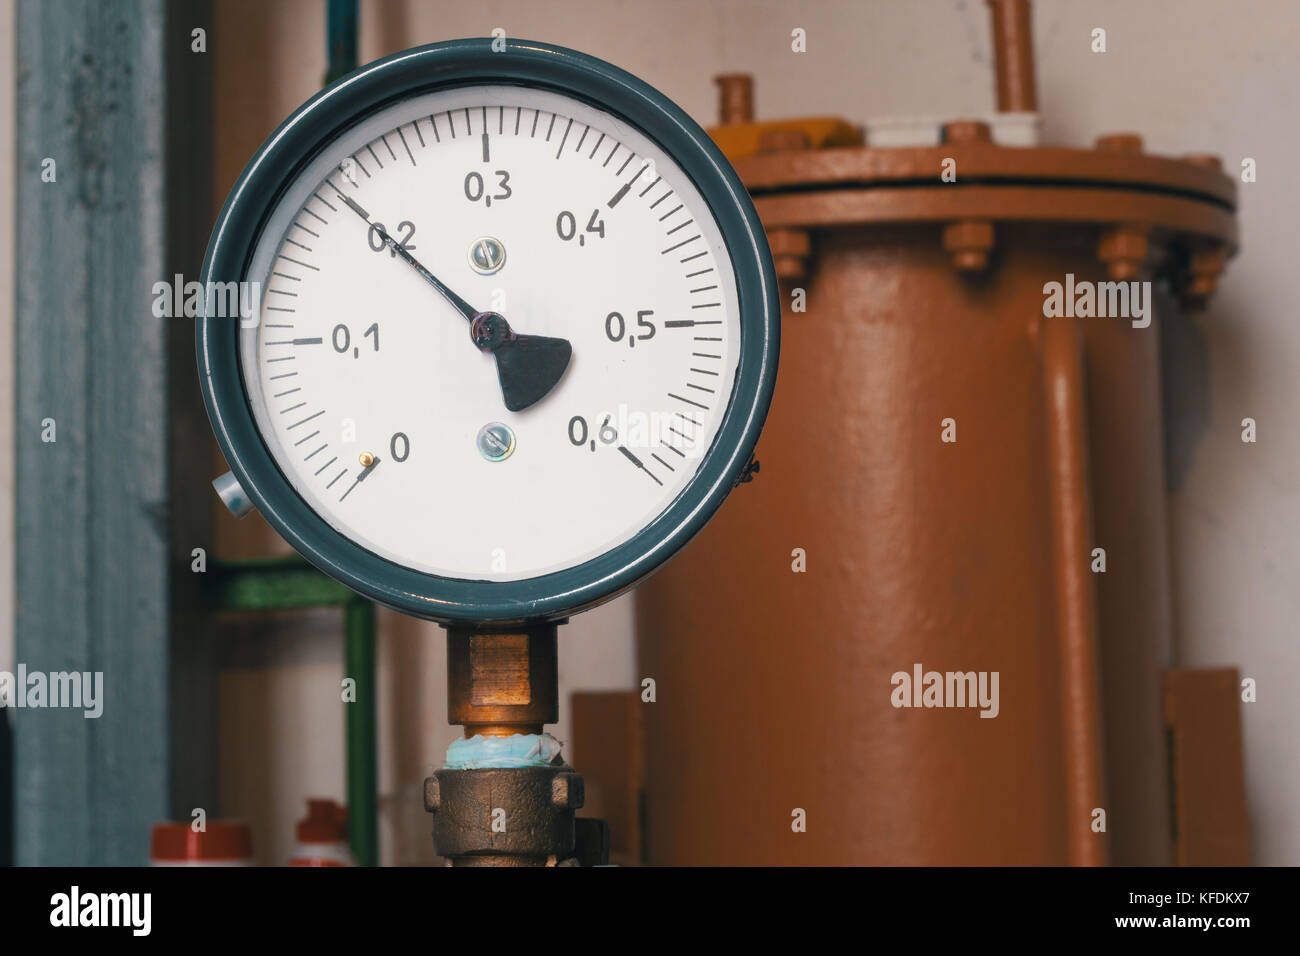 Old vintage soviet manometr of air compressor - measure air pressure - Stock Image